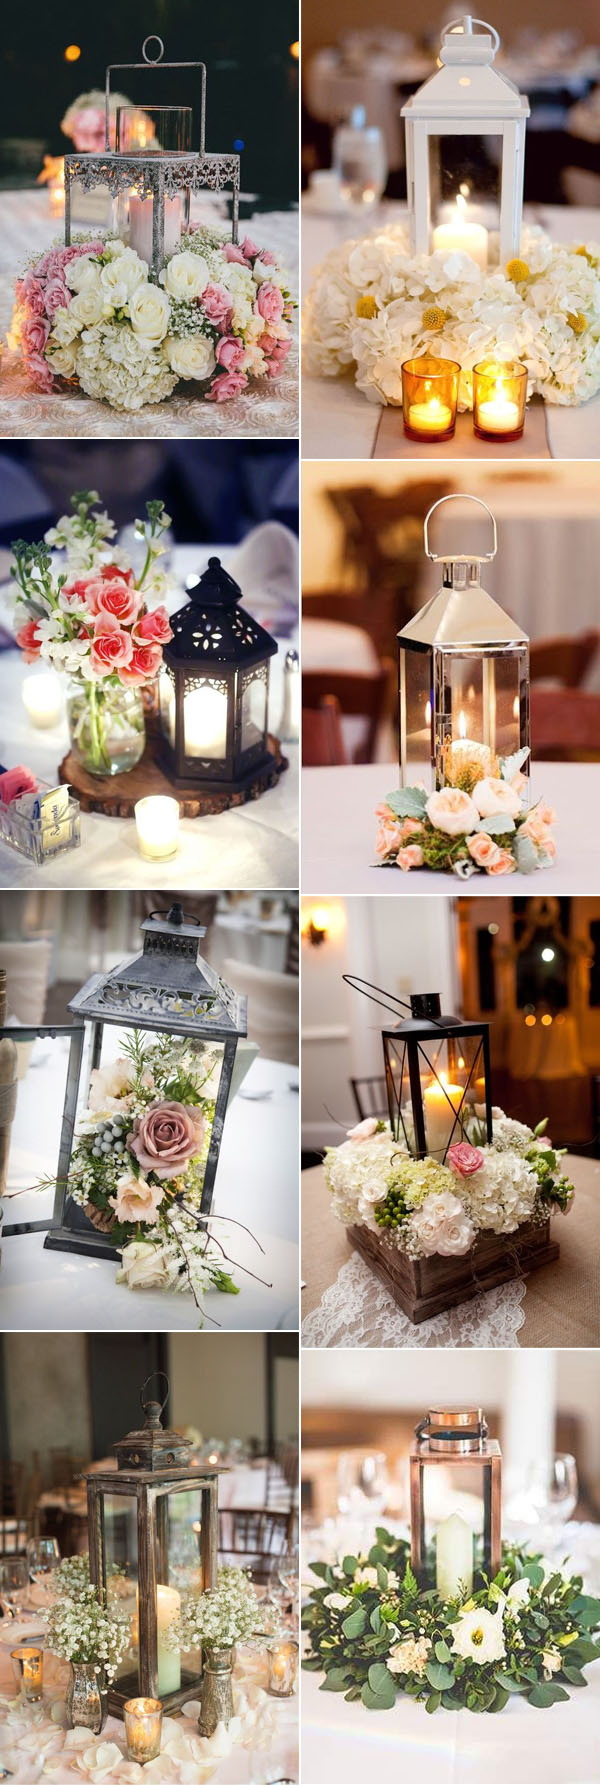 32 Stunning Wedding Centerpieces Ideas Elegantweddinginvites Blog